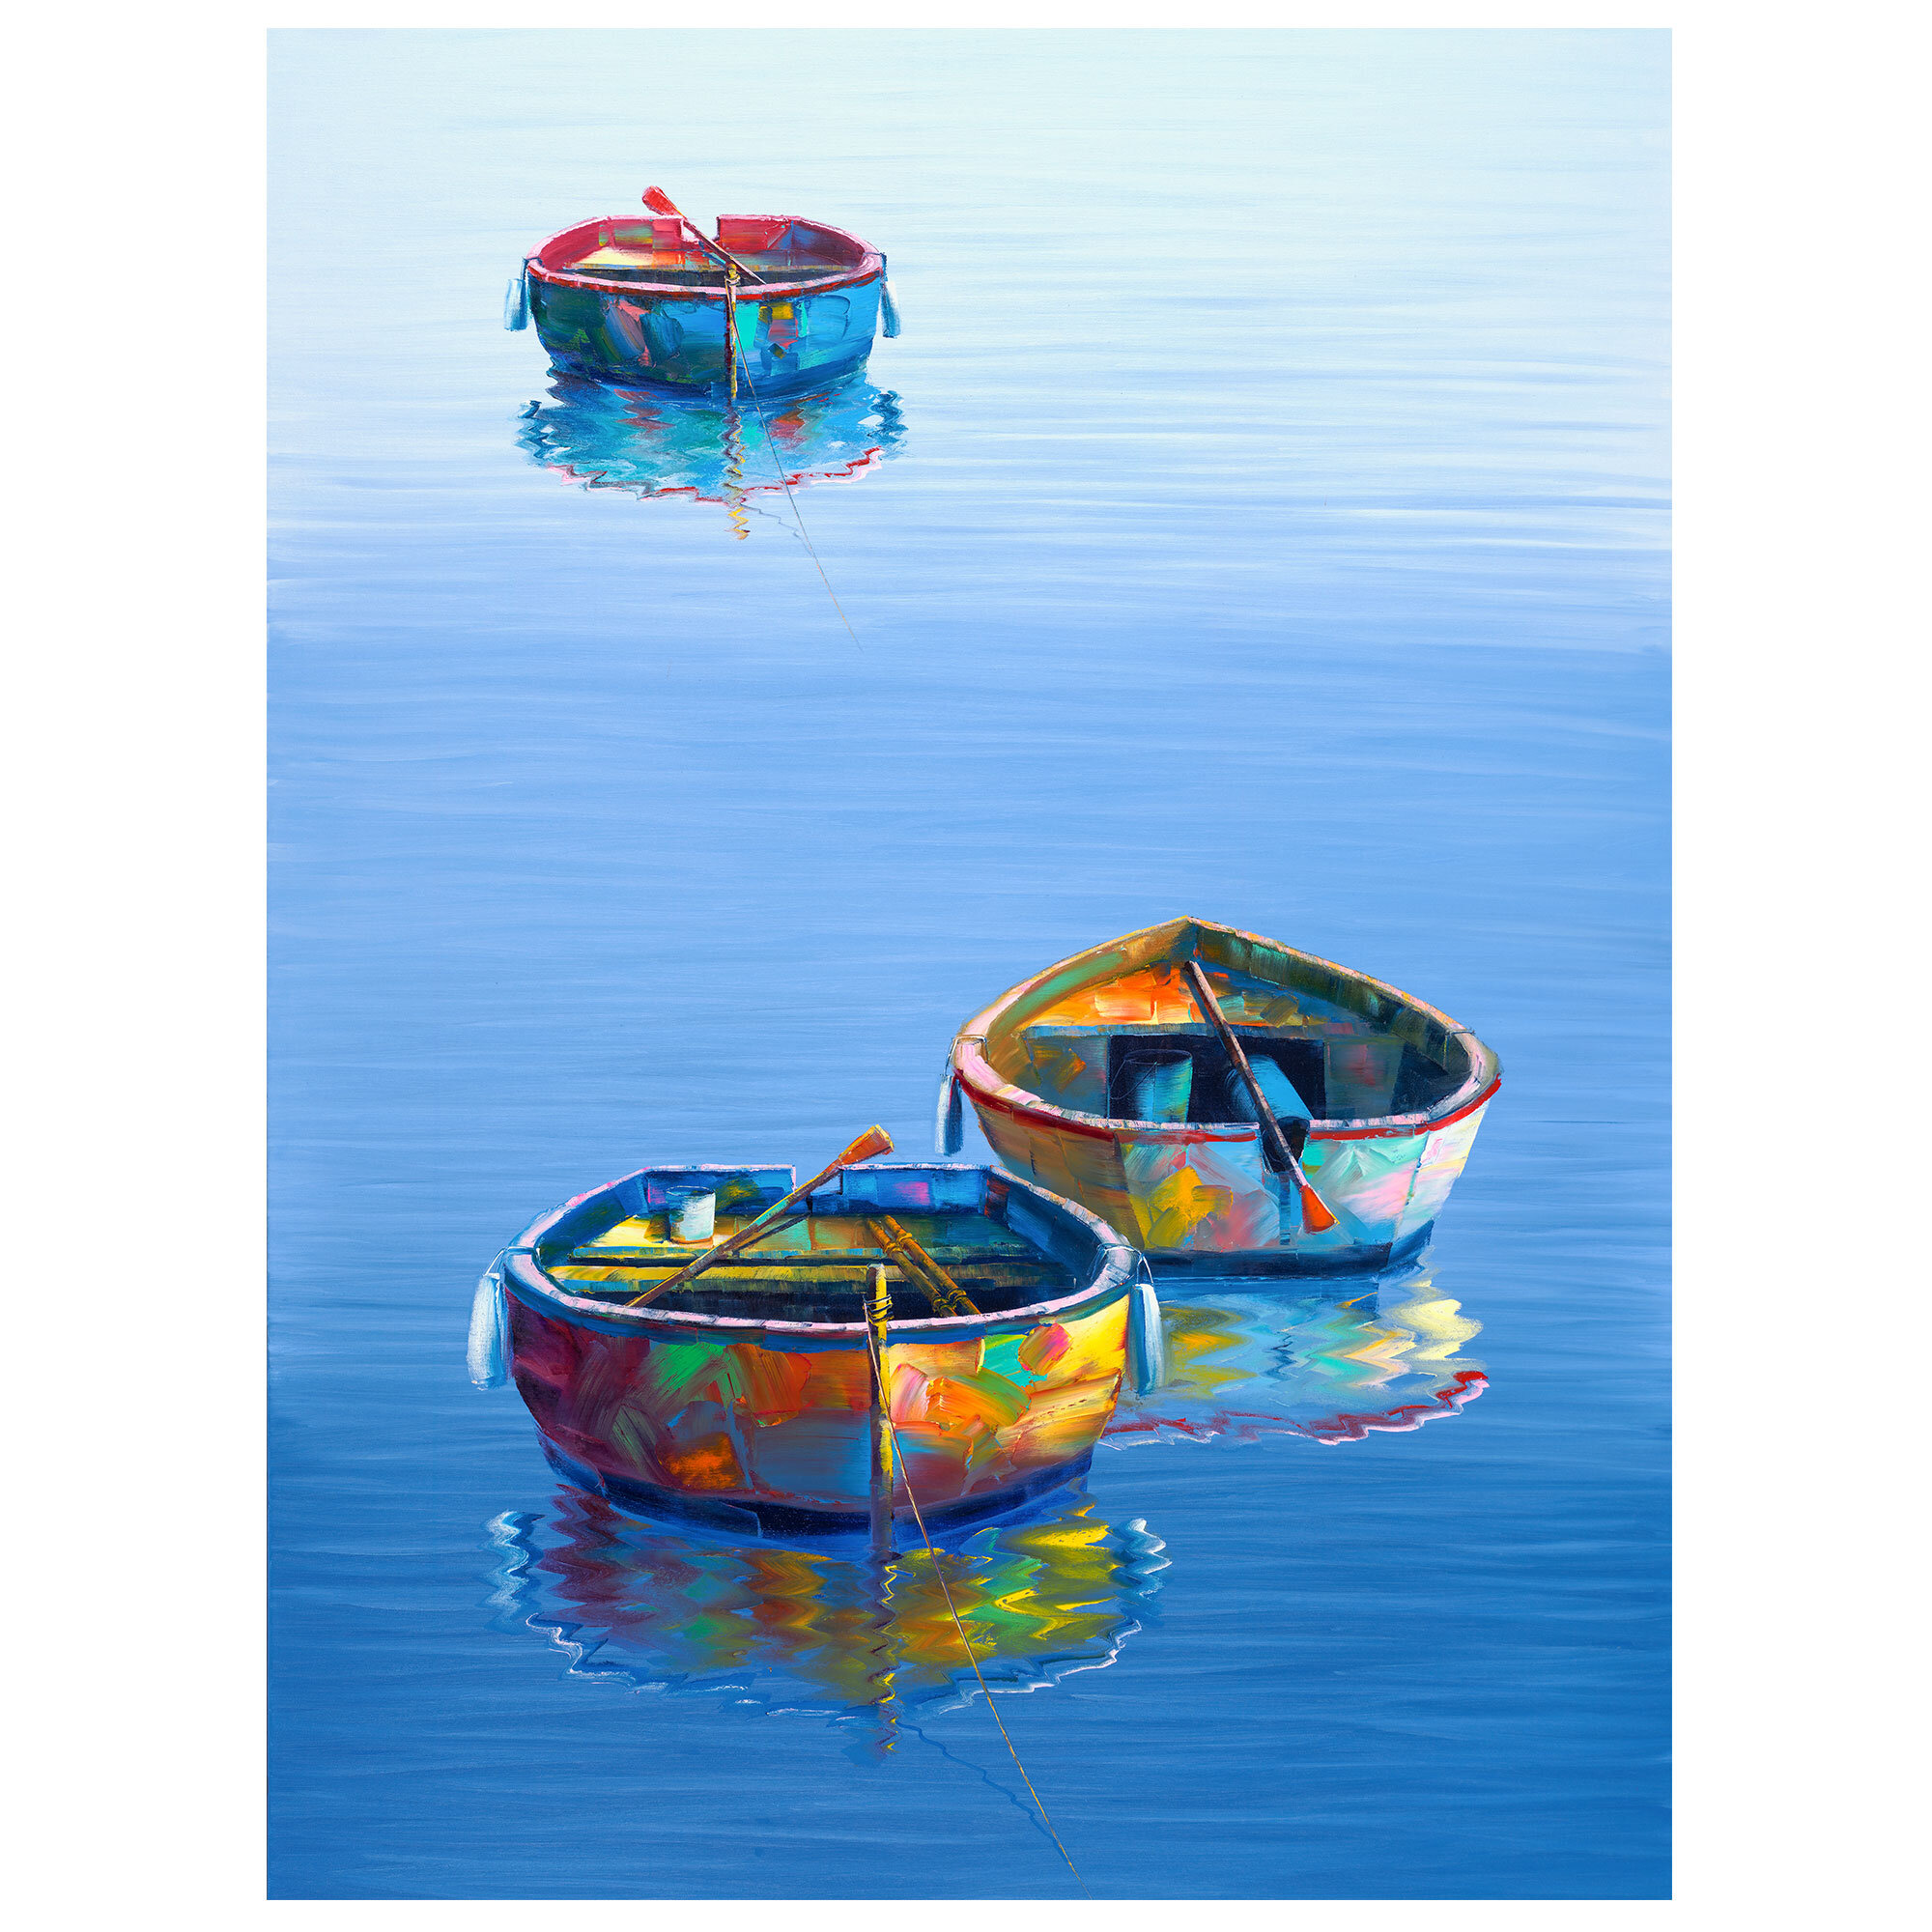 Water Transportation Wall Art You Ll Love In 2021 Wayfair